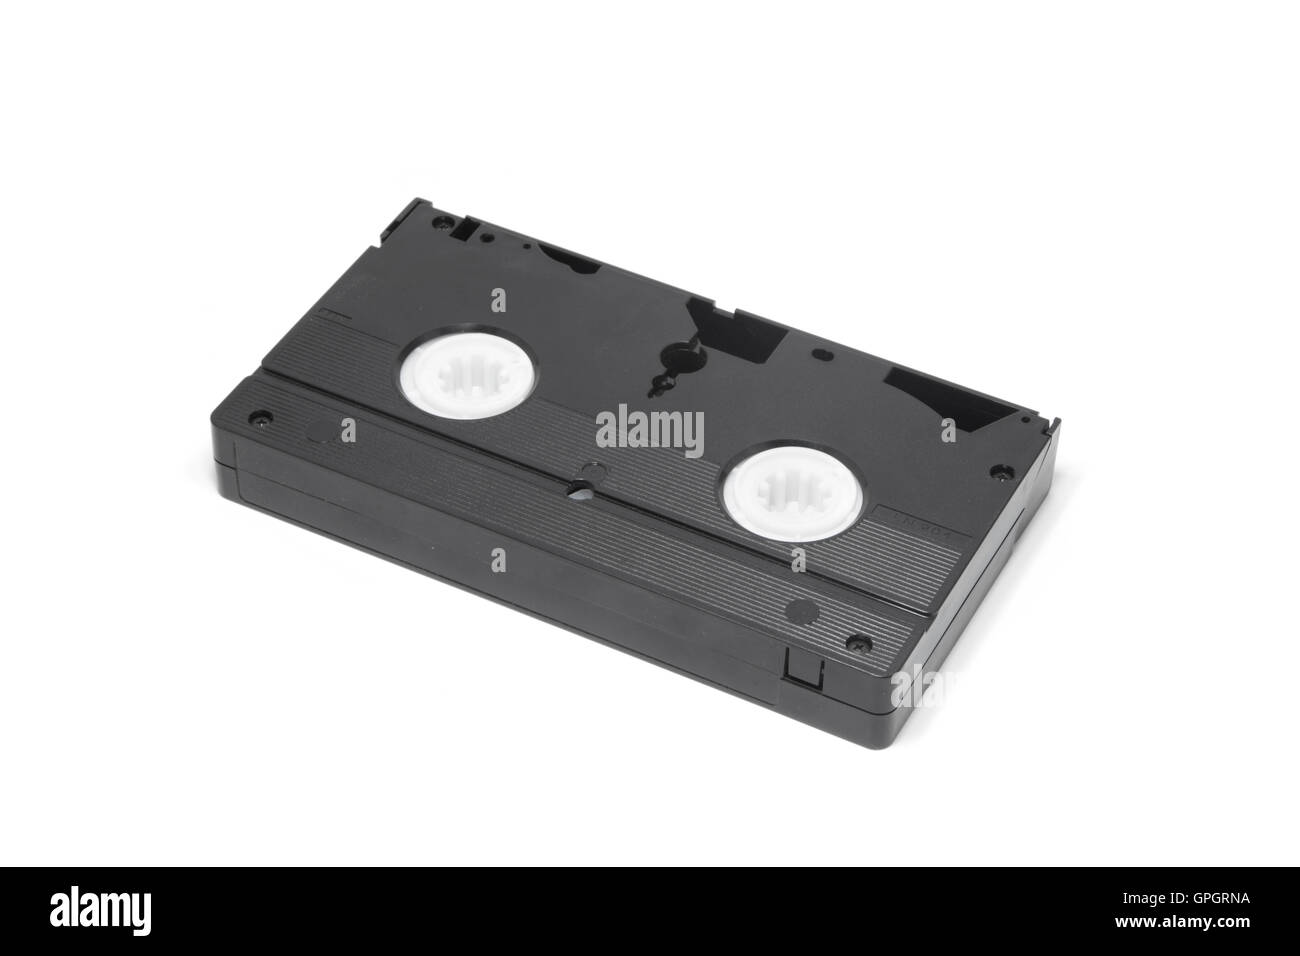 Old vhs tape isolated on white background. - Stock Image